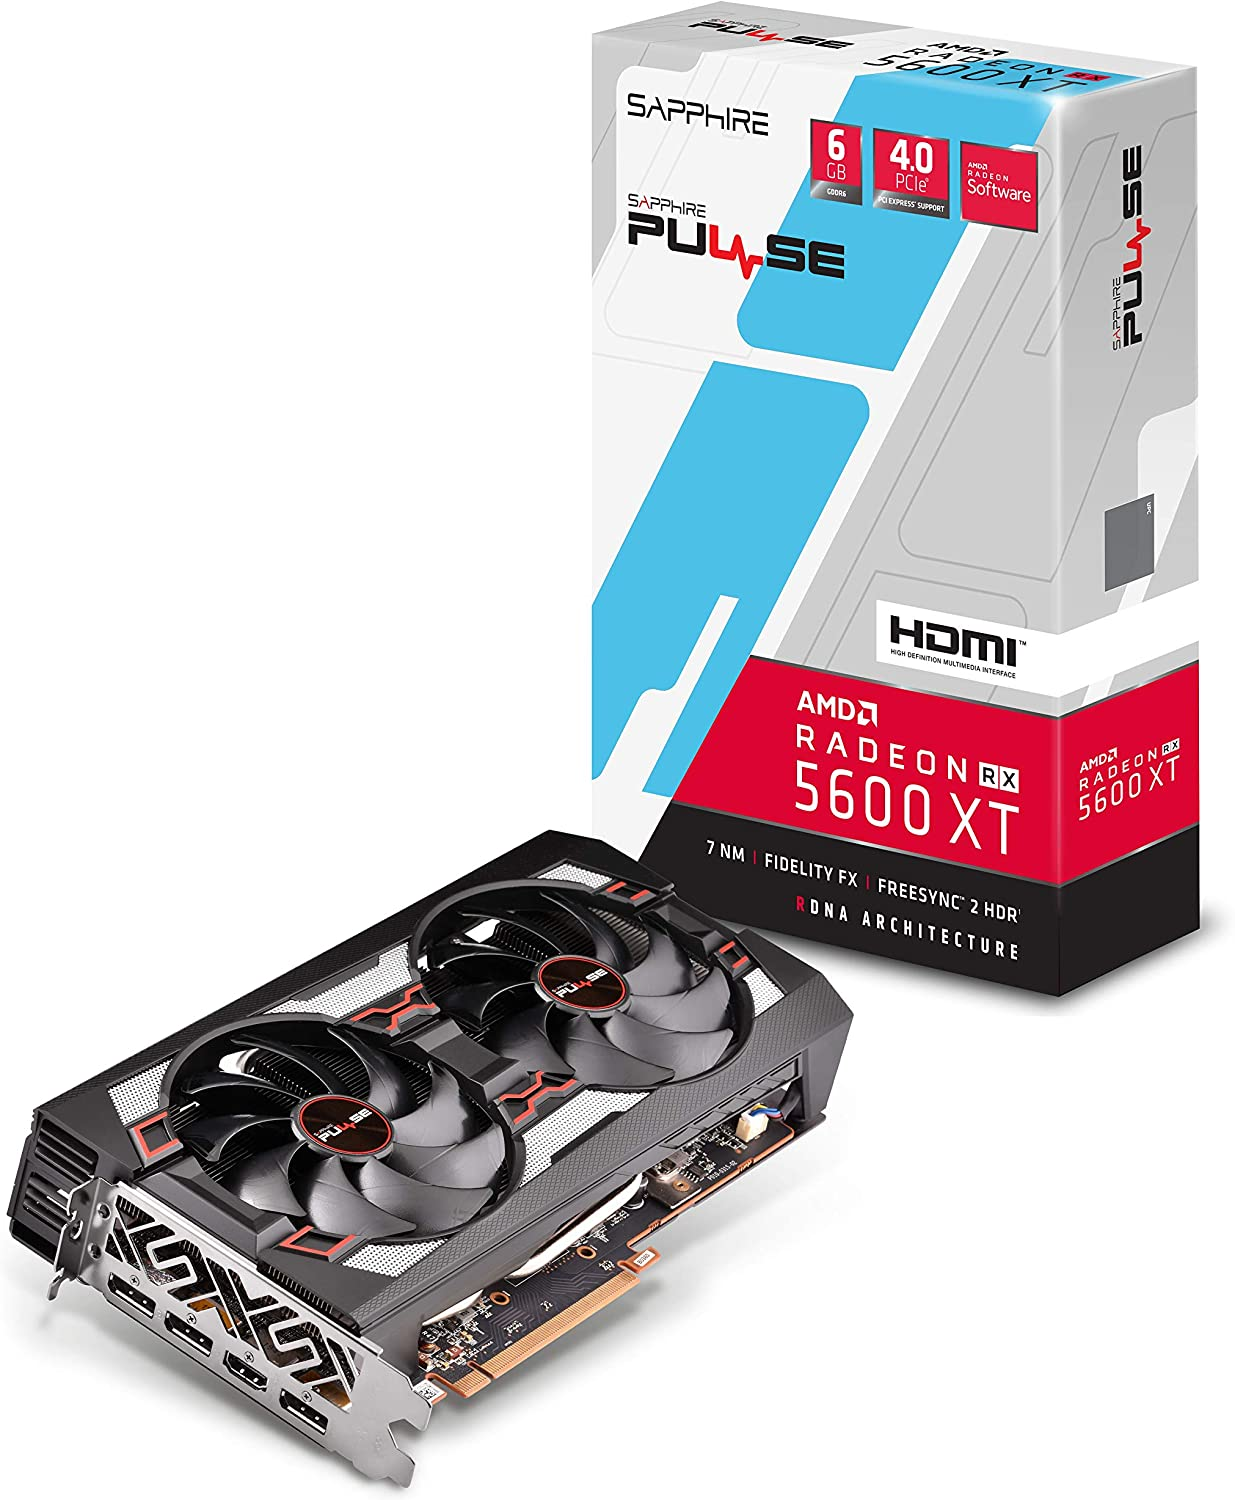 Best Graphics Card for 1080P 144Hz Gaming